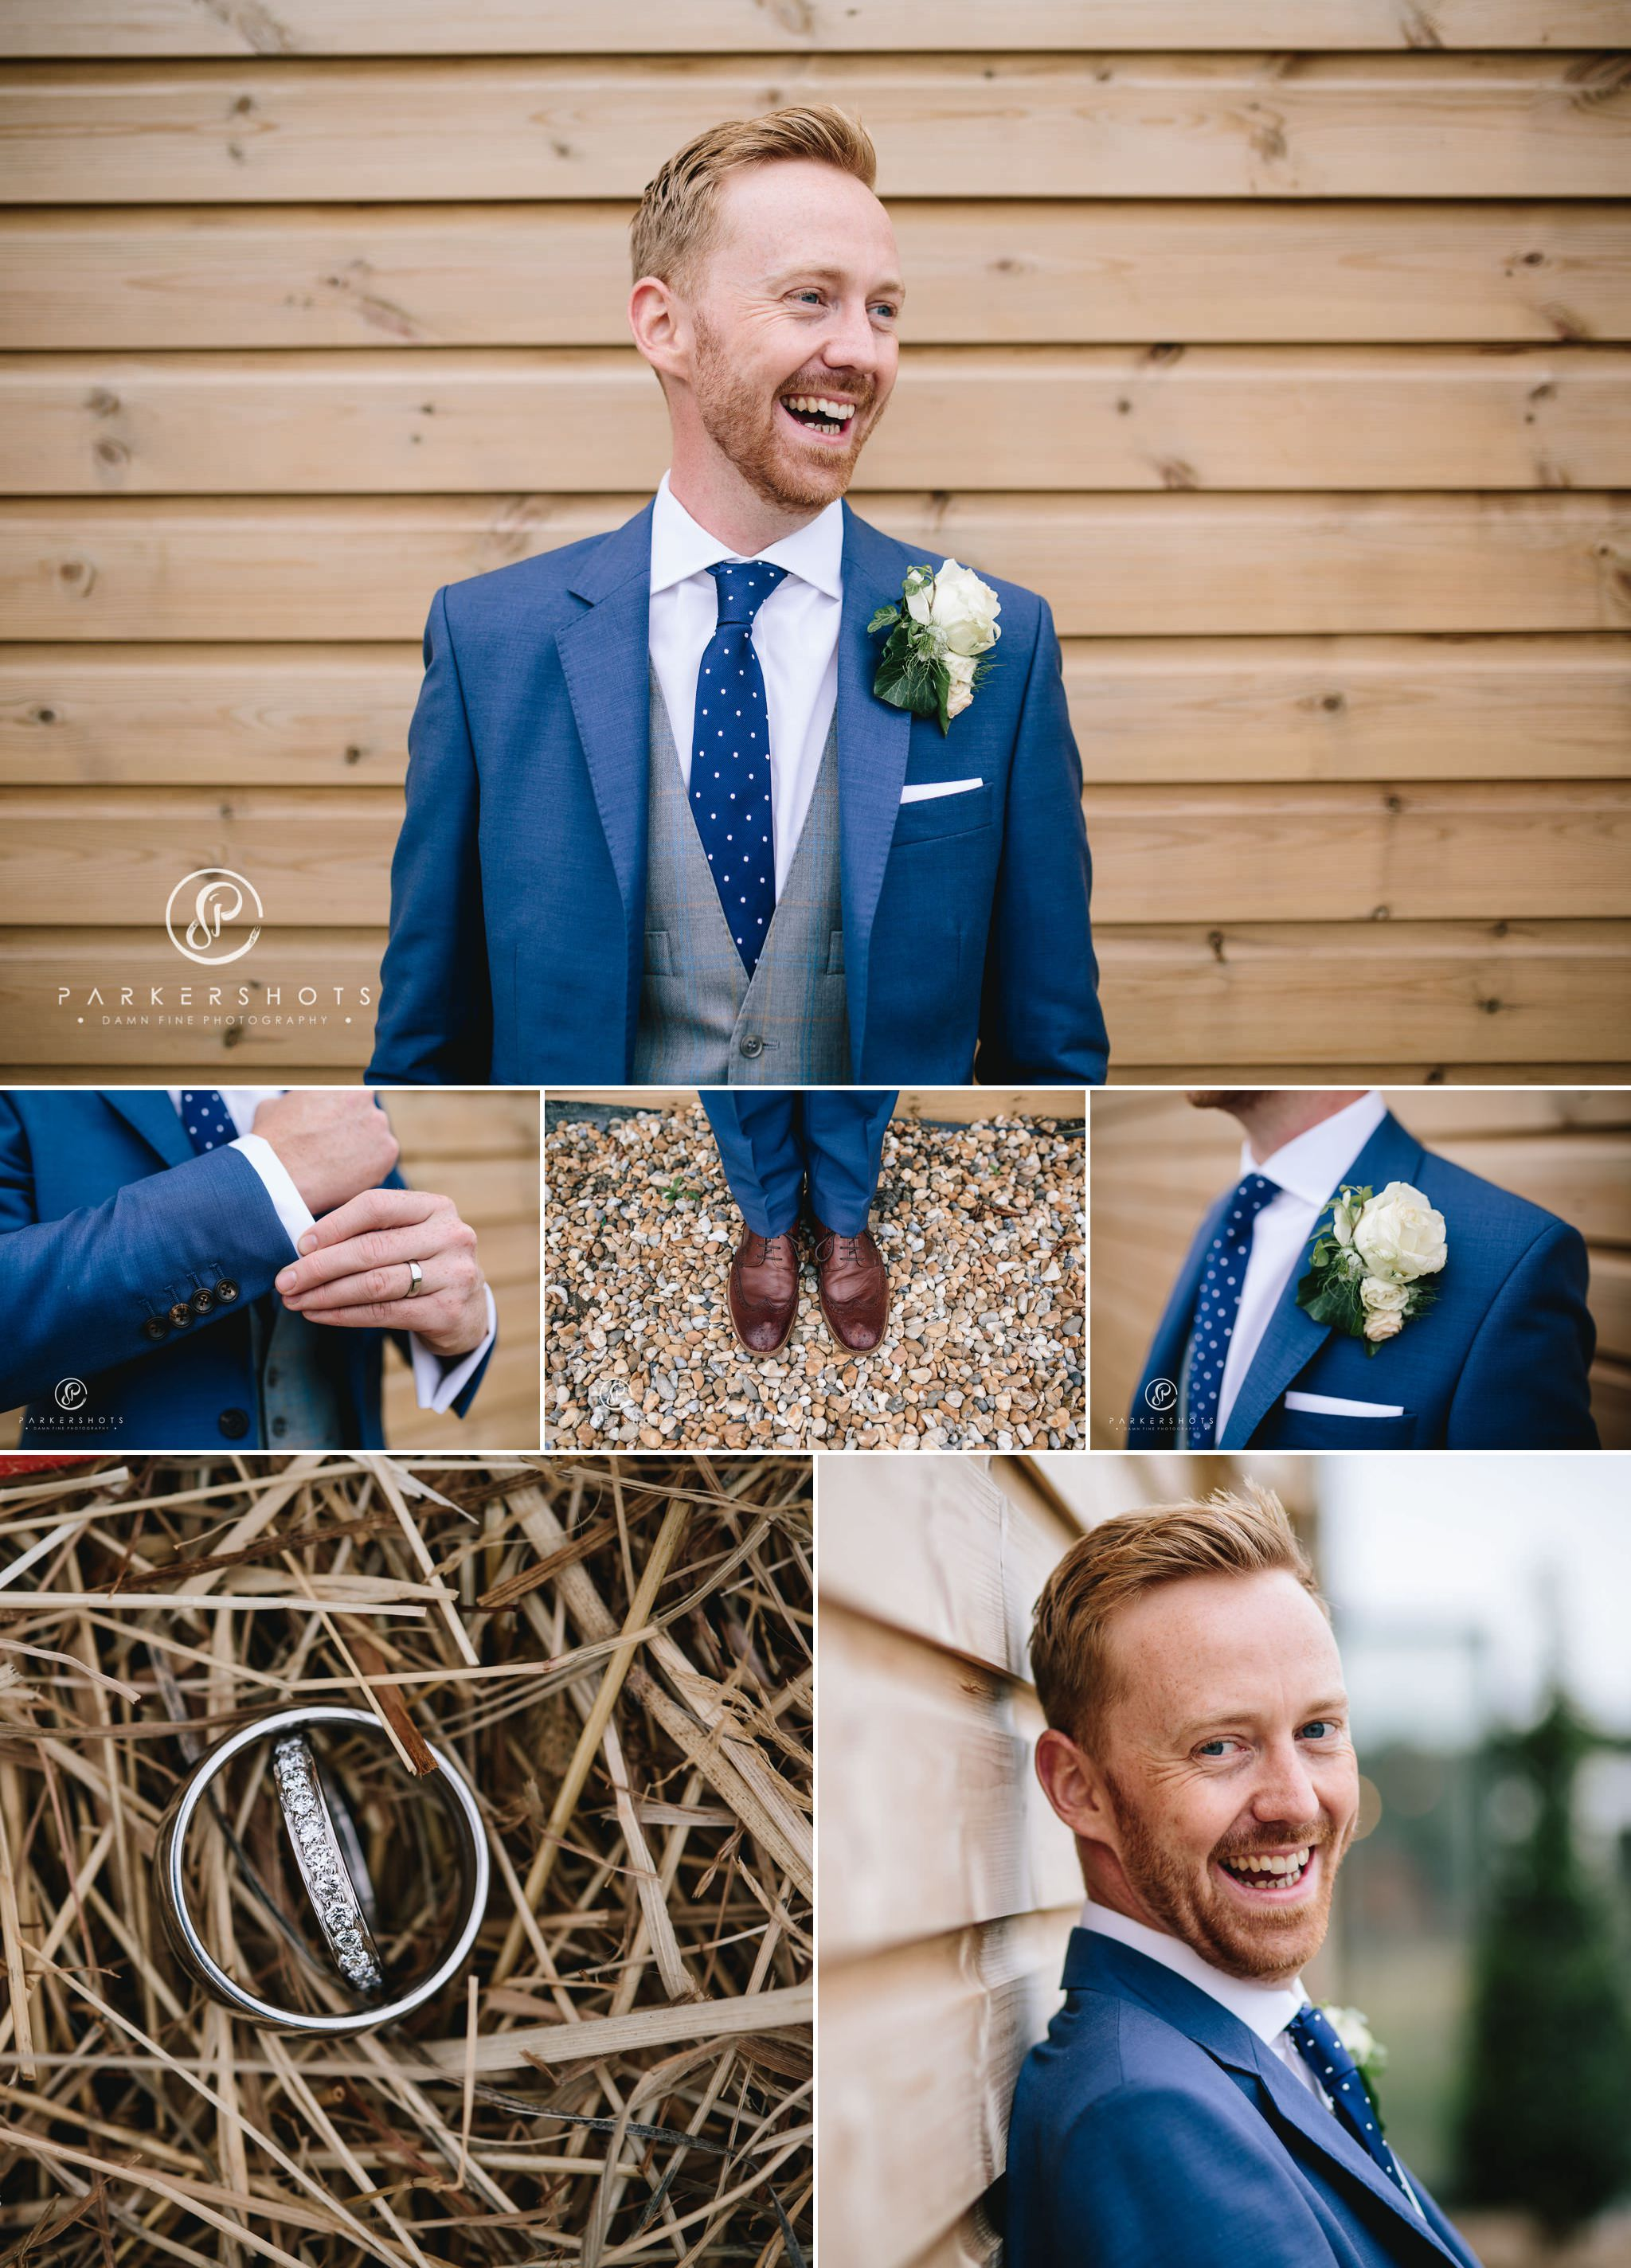 Chafford Park Wedding Photographer 16